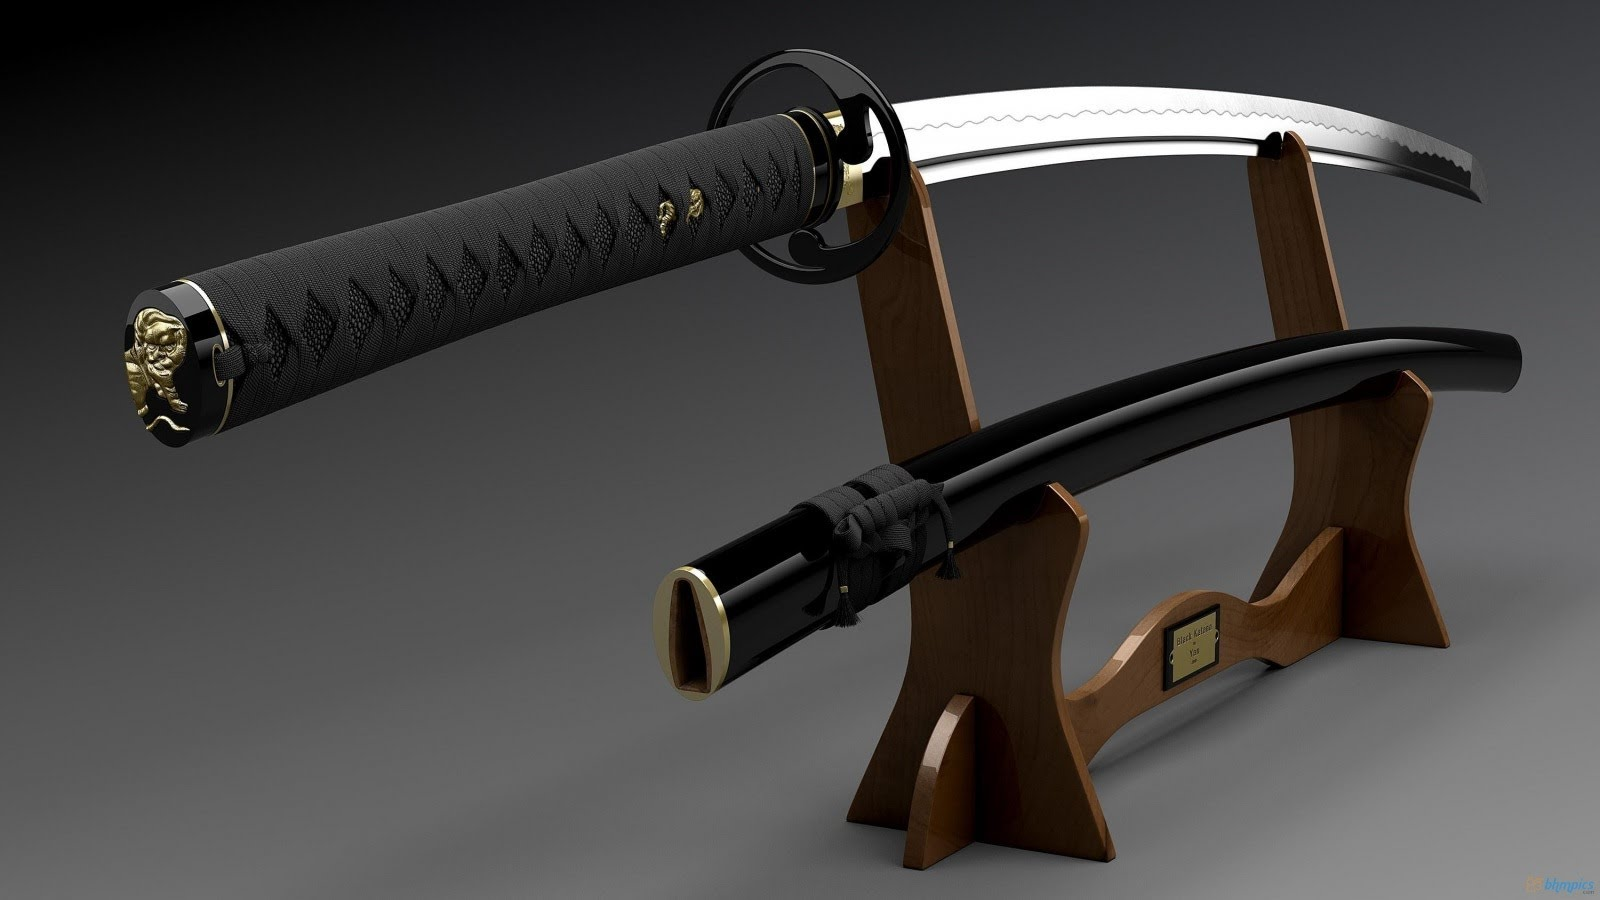 How To Make A Japanese Katana Sword Out Of Metal